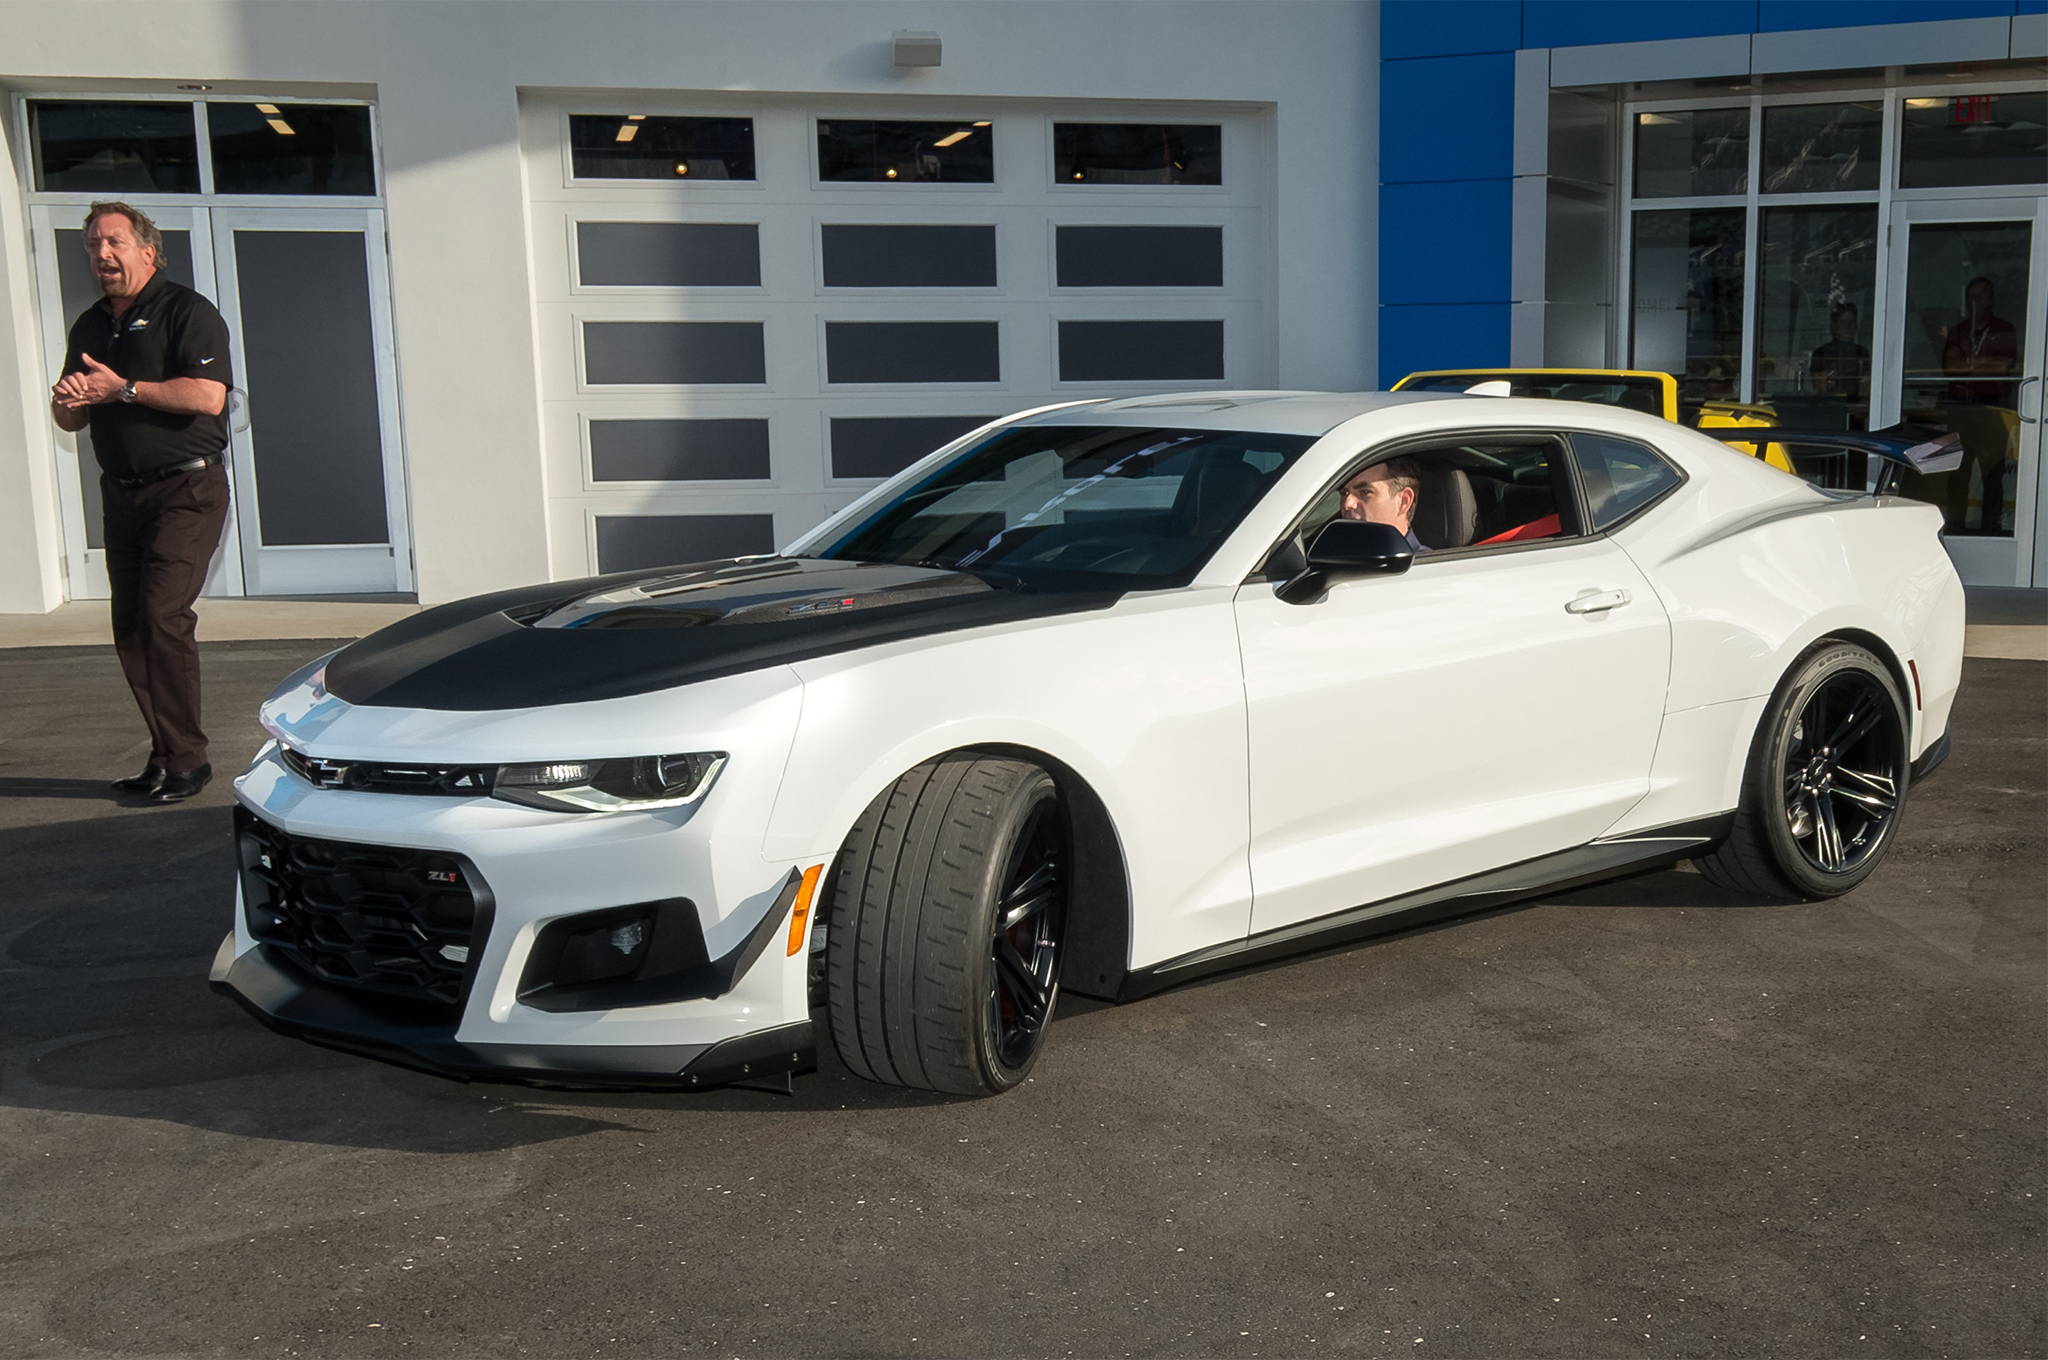 2018-Chevrolet-Camaro-ZL1-1LE-reveal-front-three-quarter